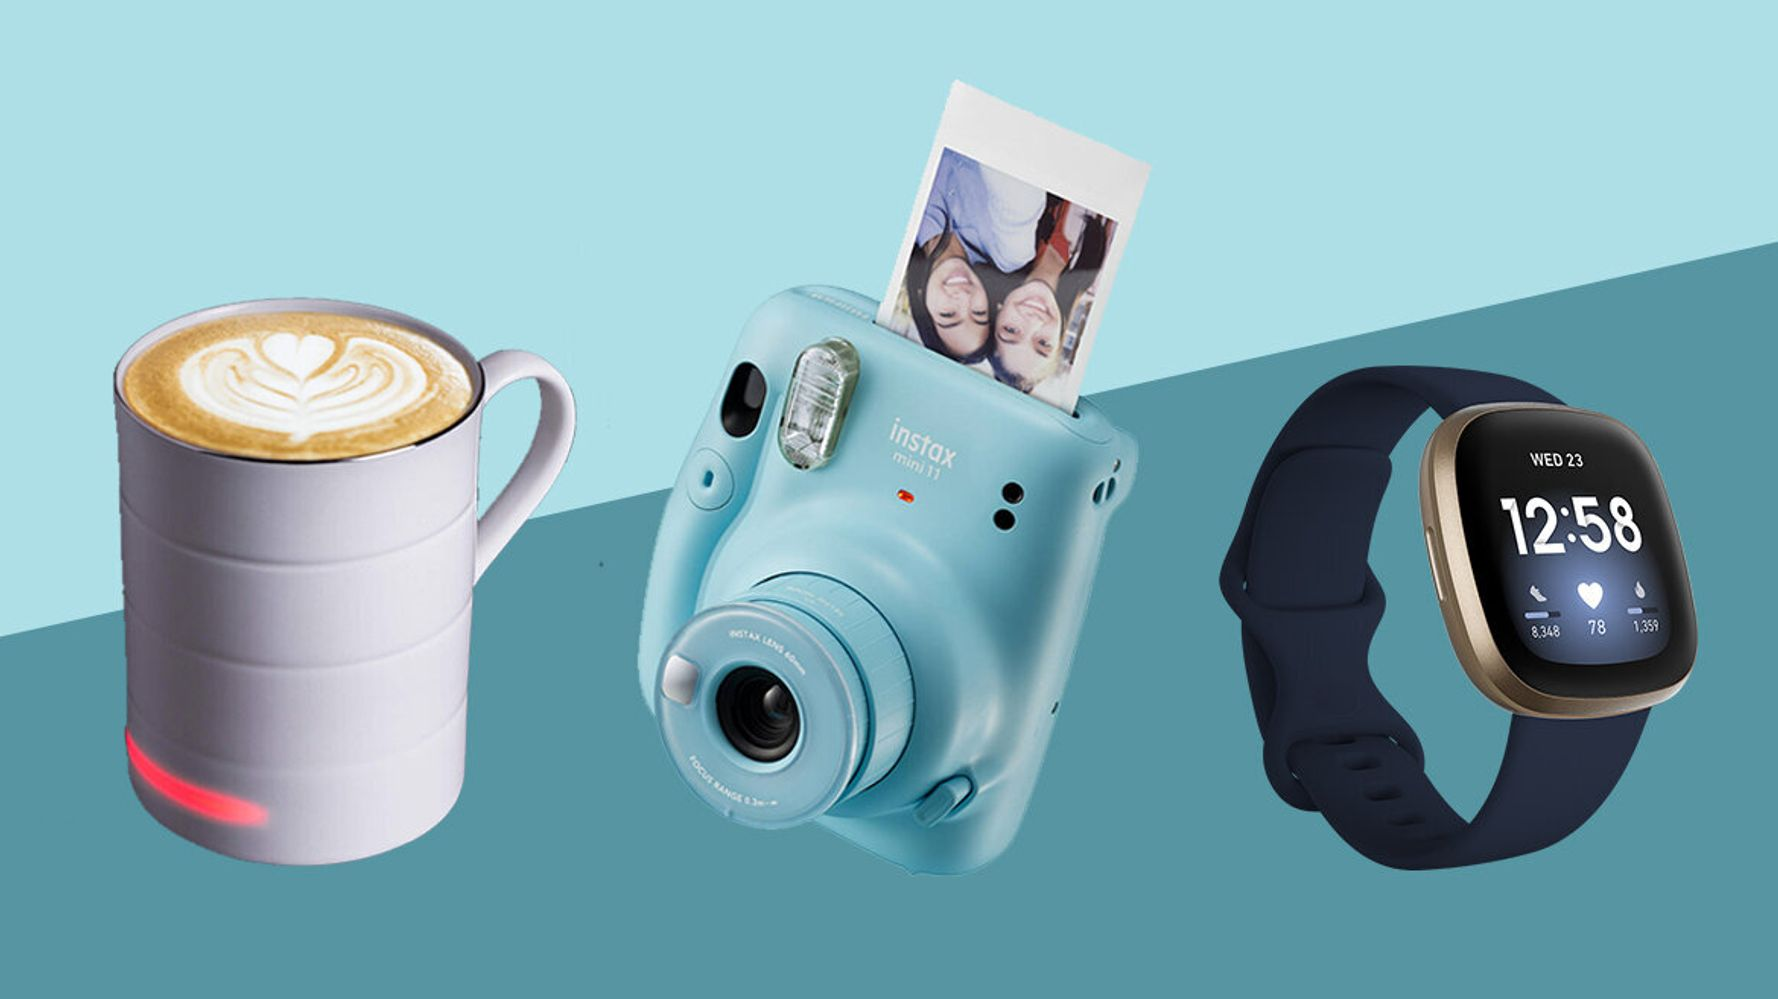 15 Tech Gifts And Gadgets That'll Impress This Christmas